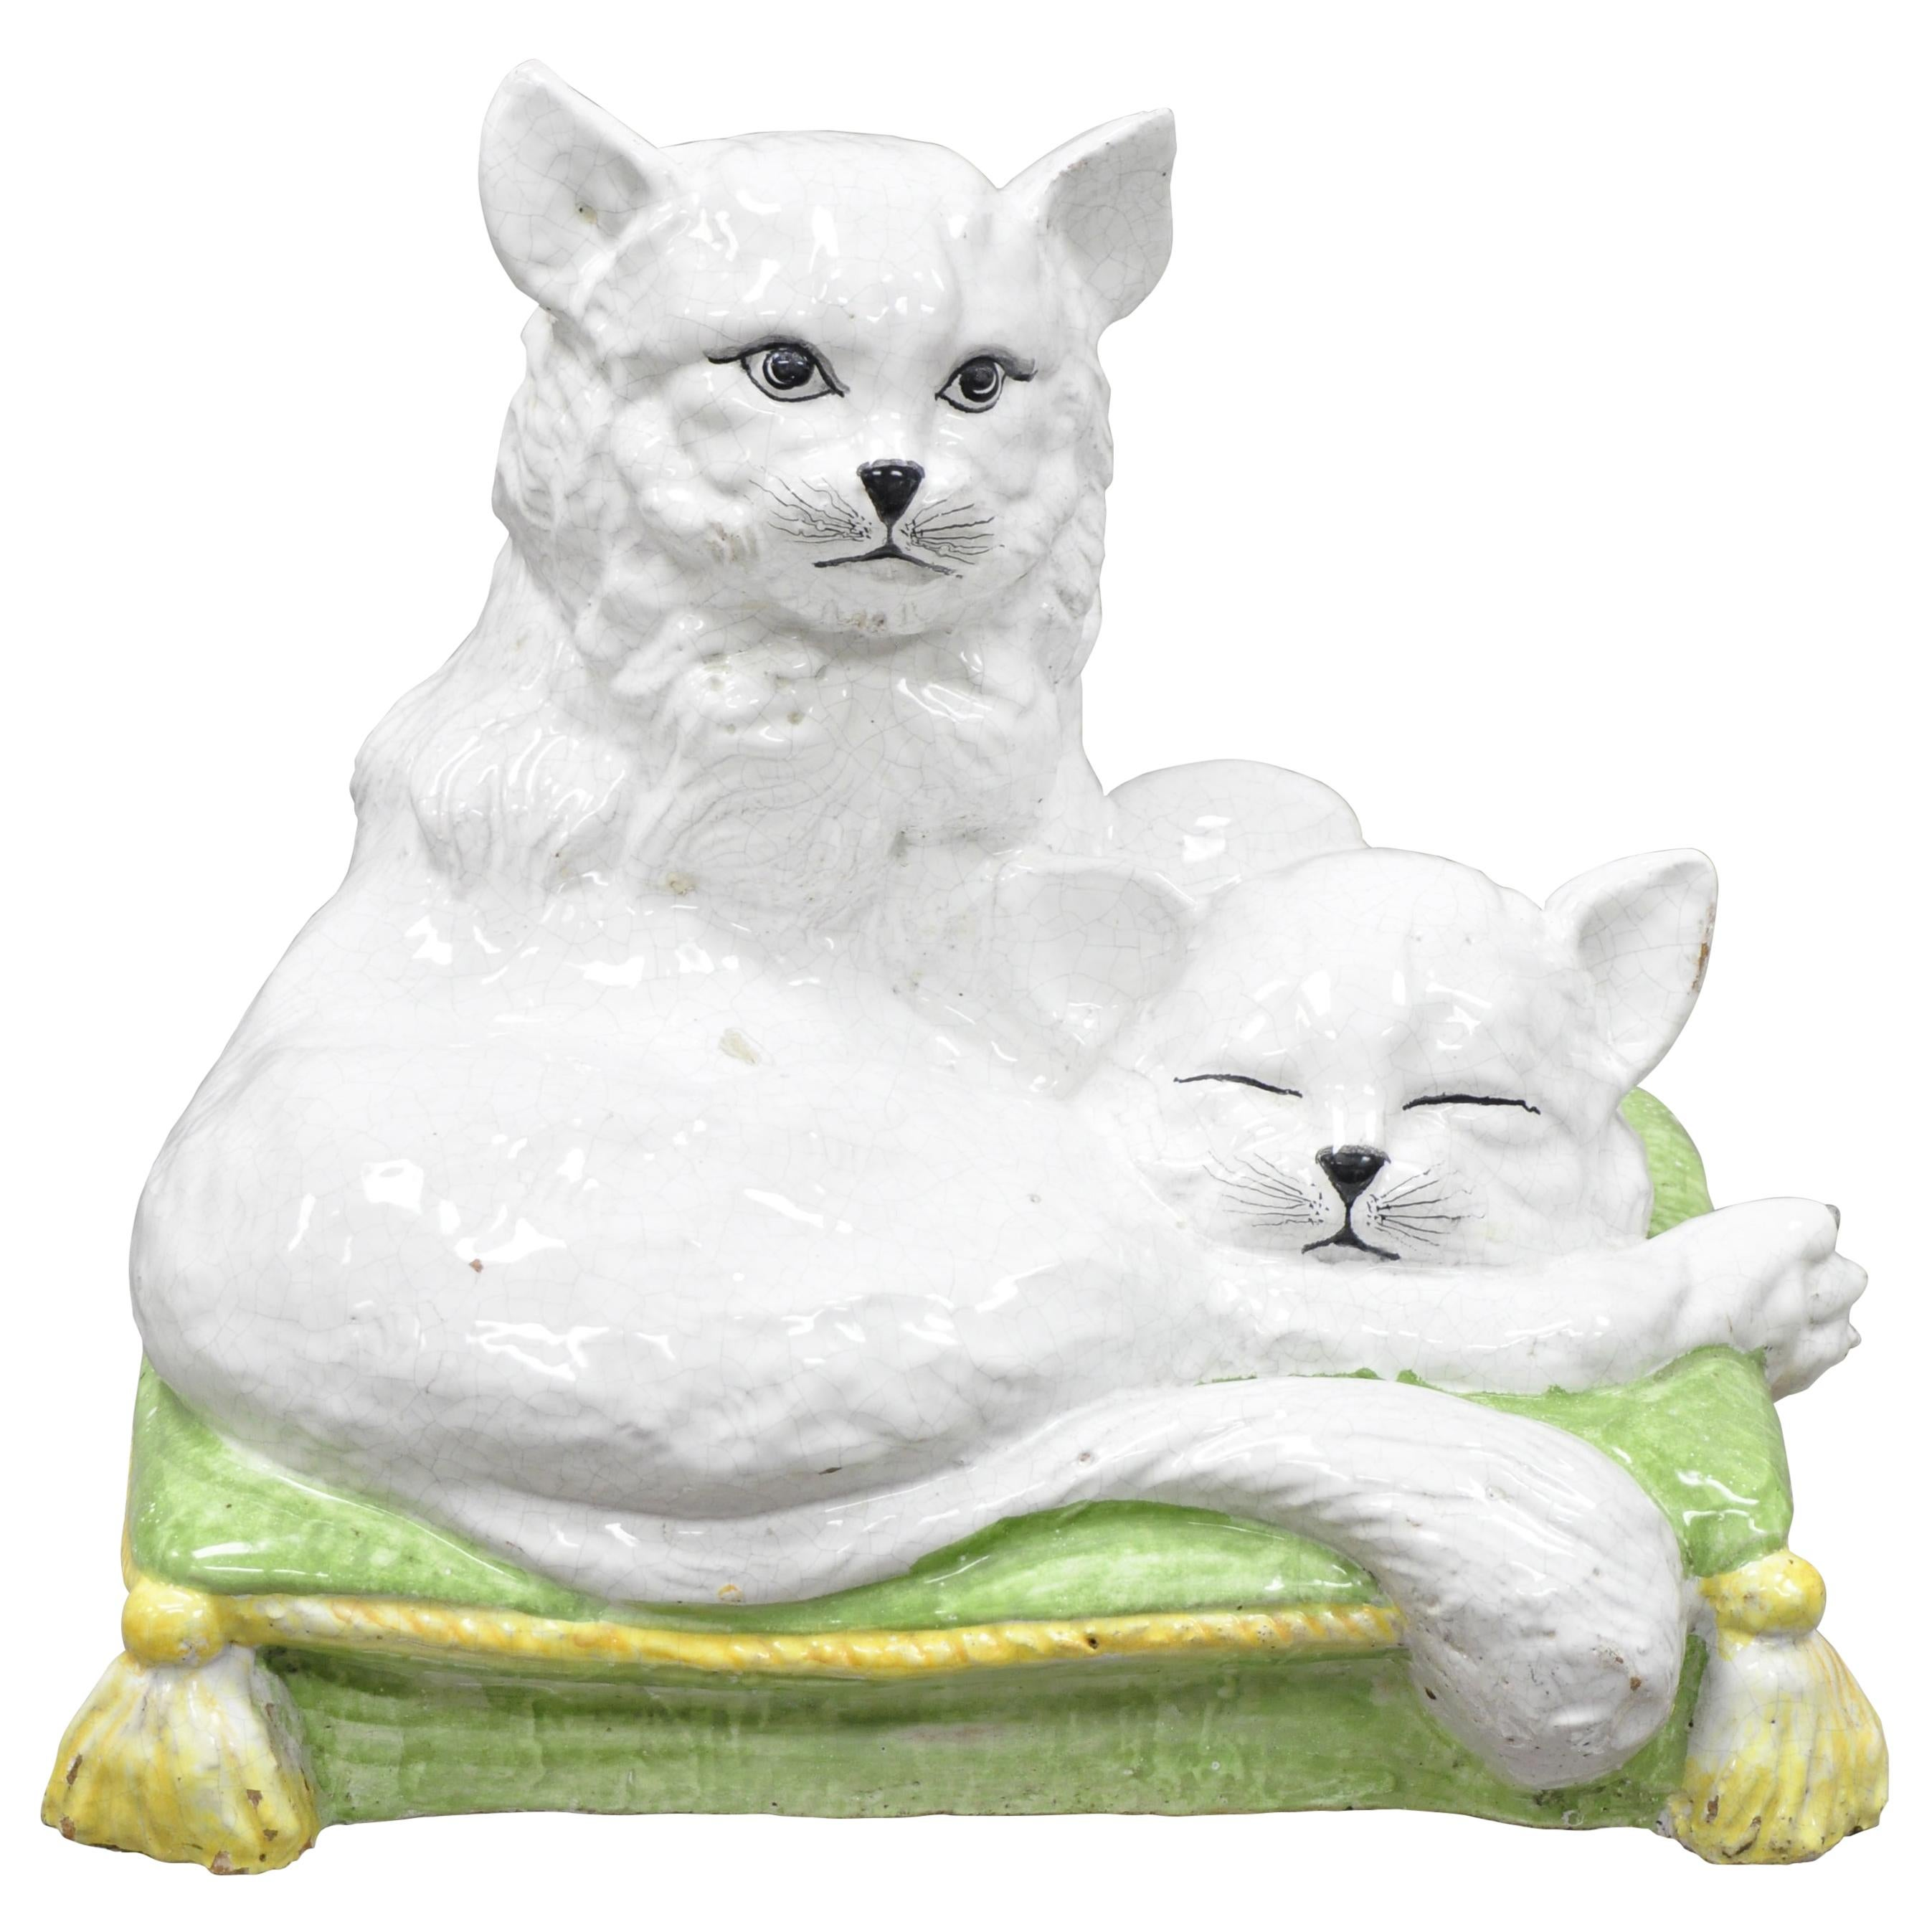 Vintage Glazed Terracotta Italian Hollywood Regency Sculpture Two Cats on Pillow